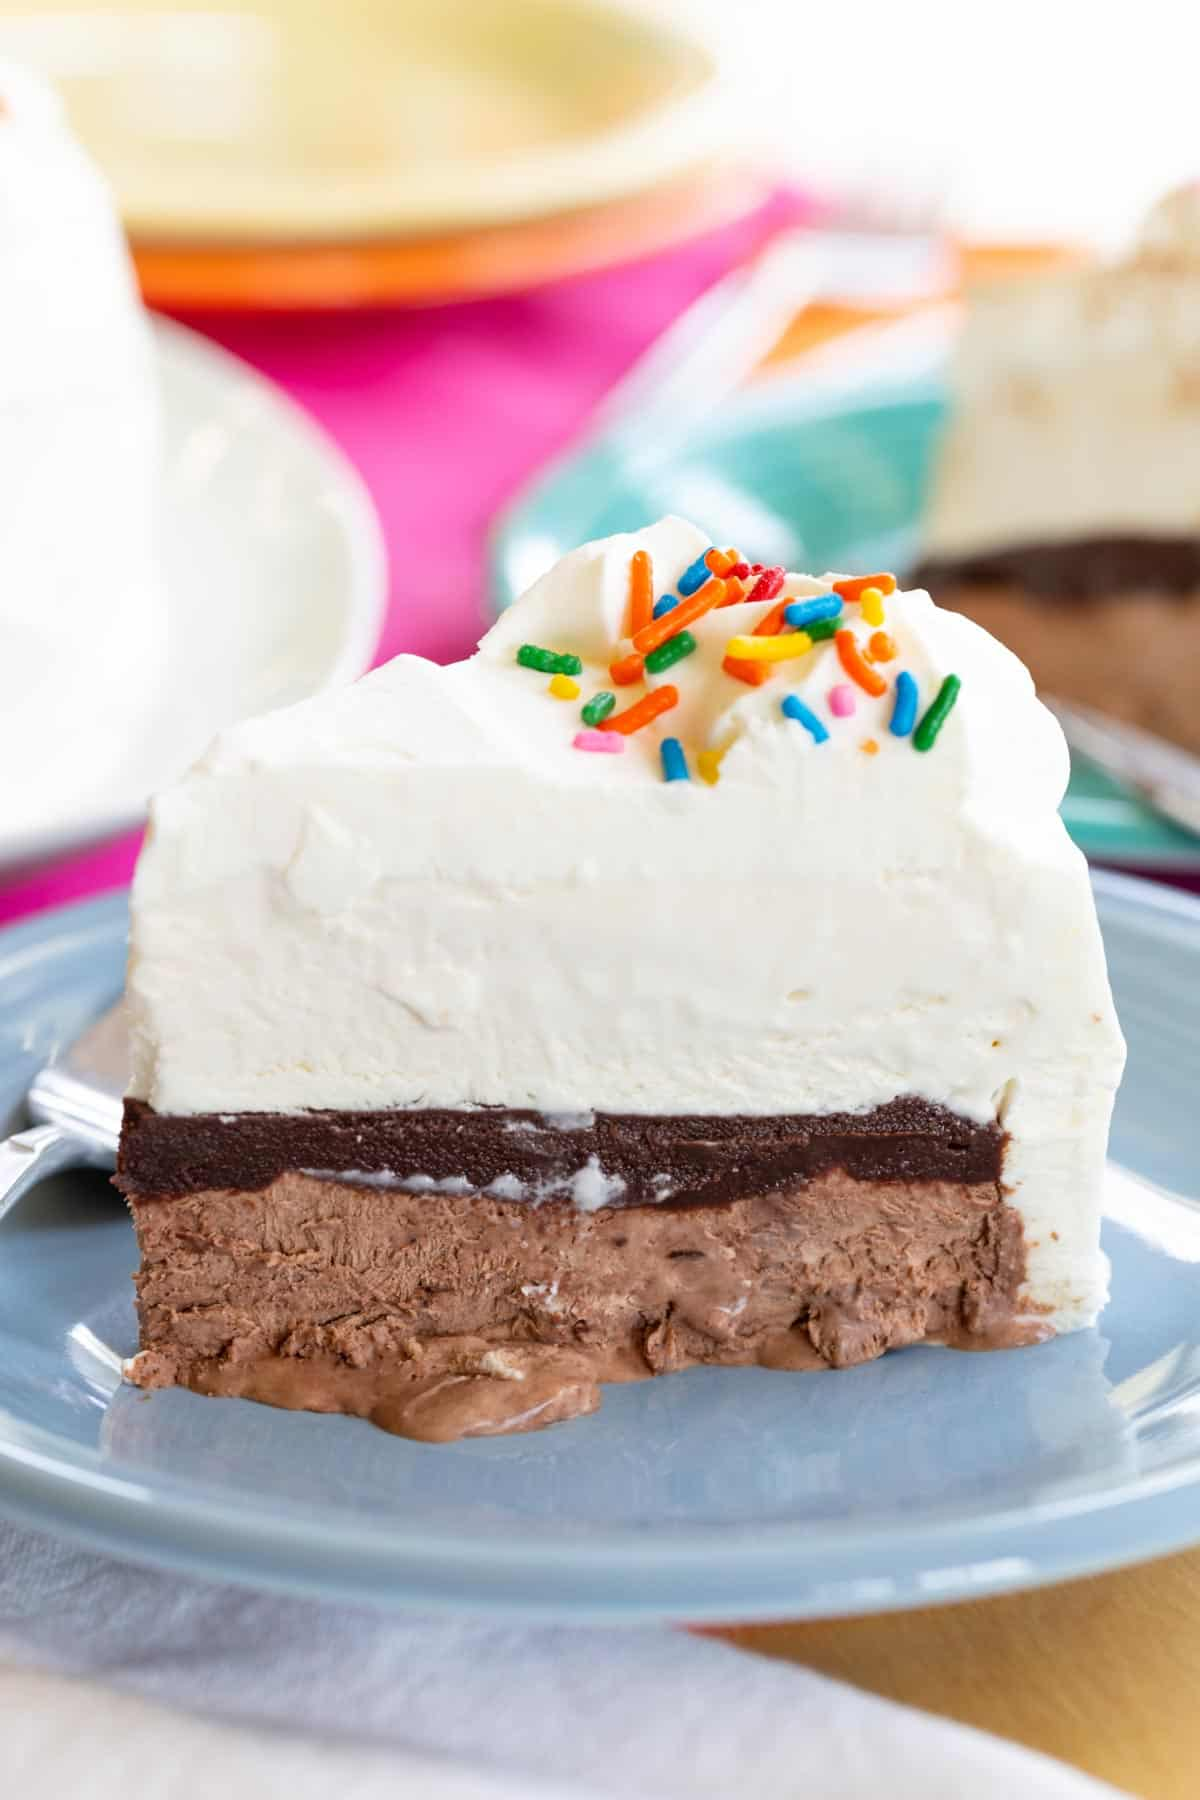 Ice cream cake with chocolate on the bottom, a later of fudge, then vanilla ice cream, and topped with whipped cream and sprinkles